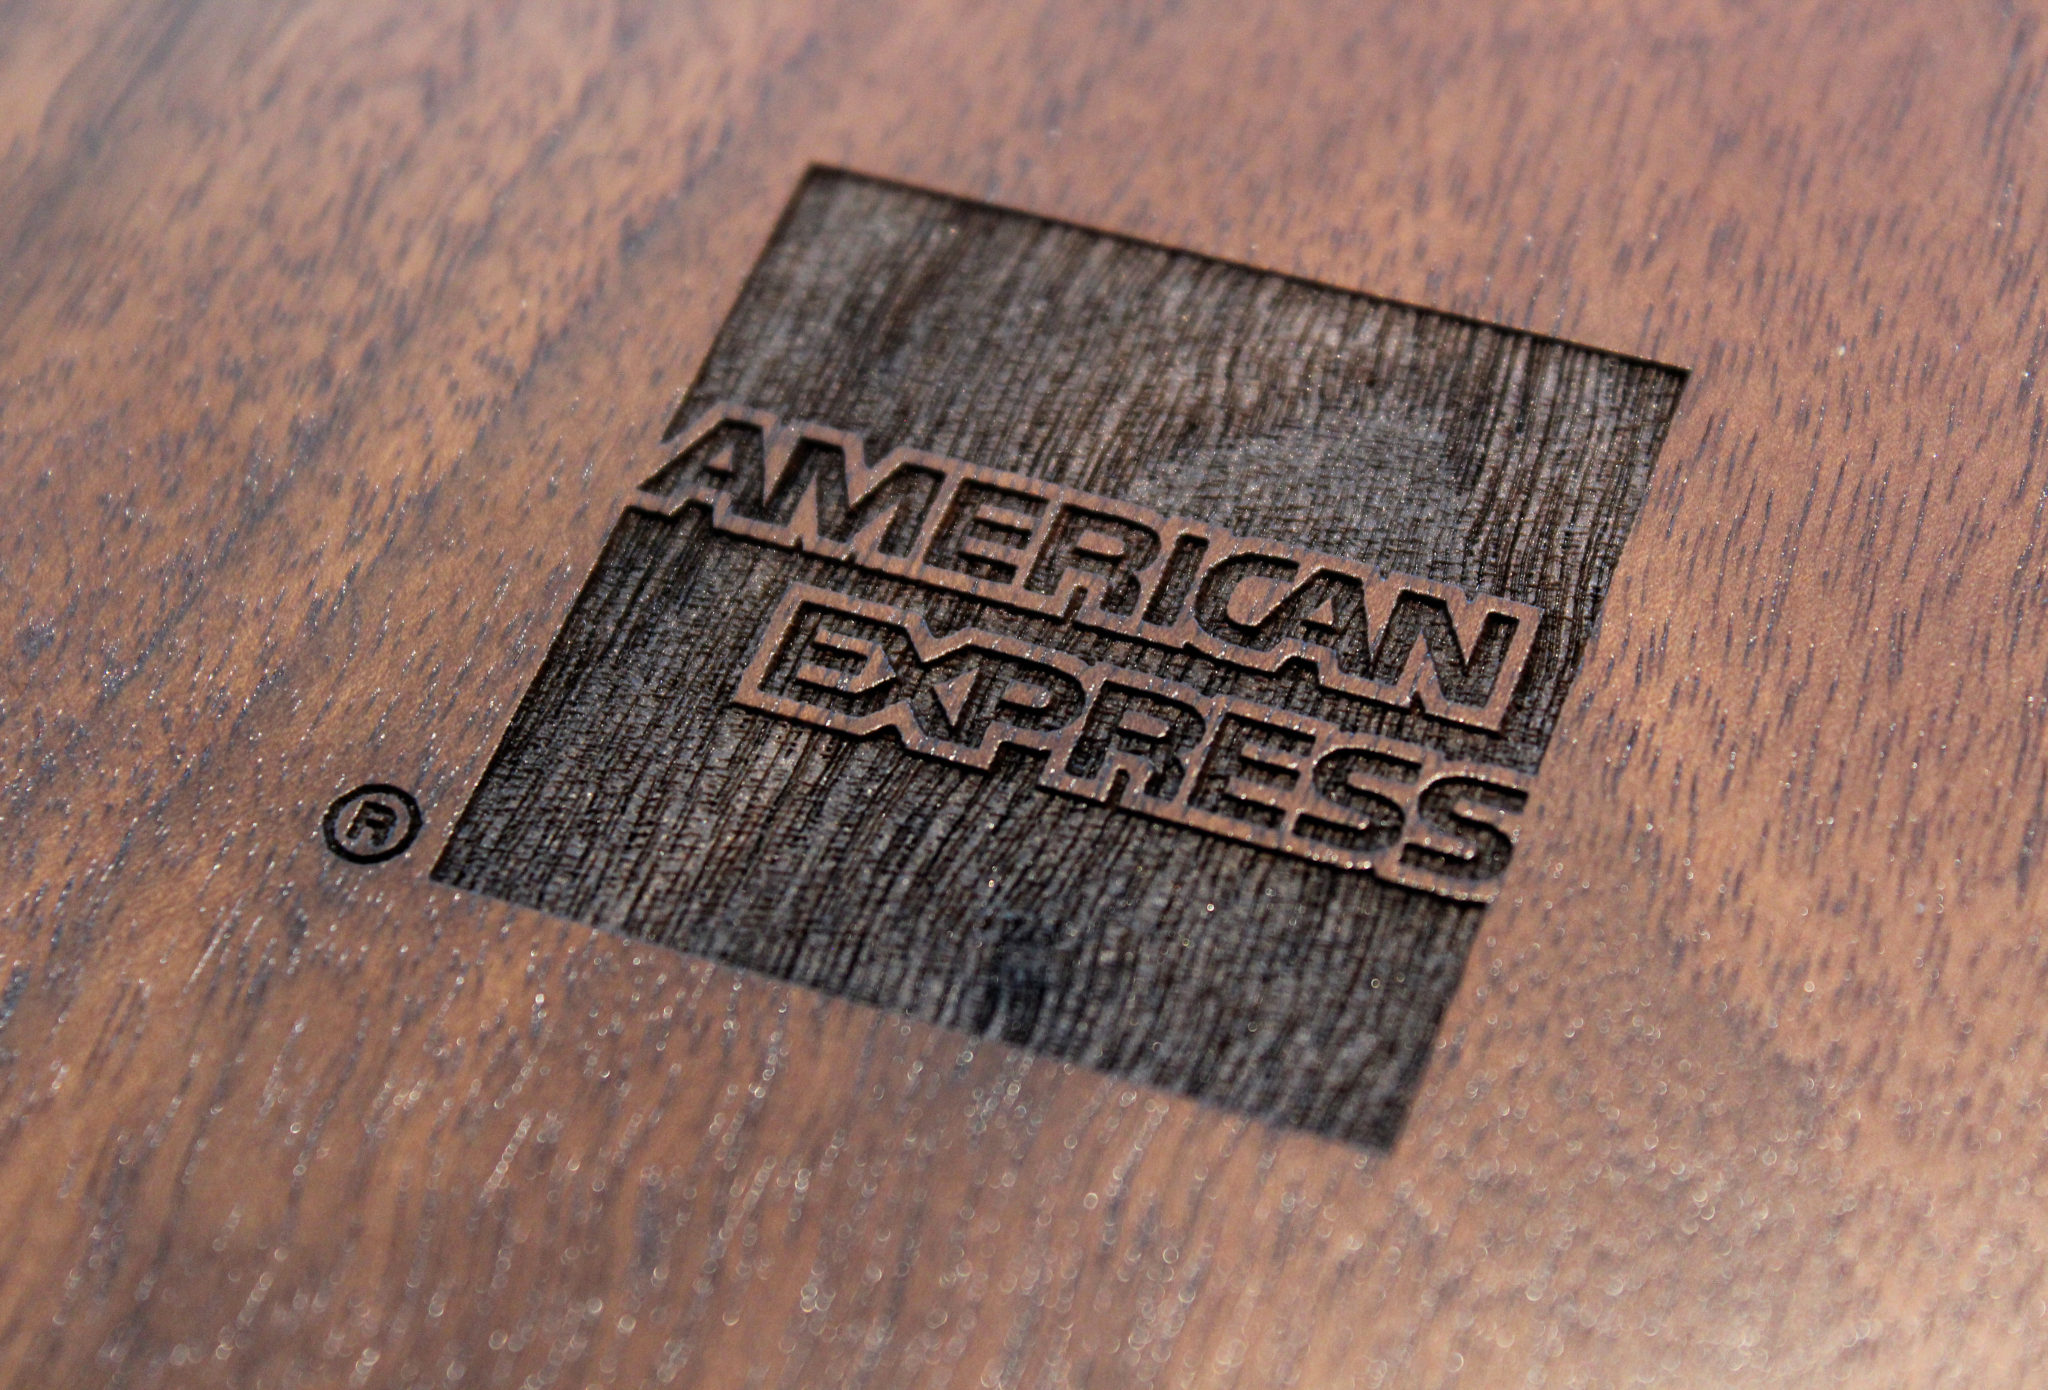 31 Benefits and Perks of the Amex Gold Card [2020]